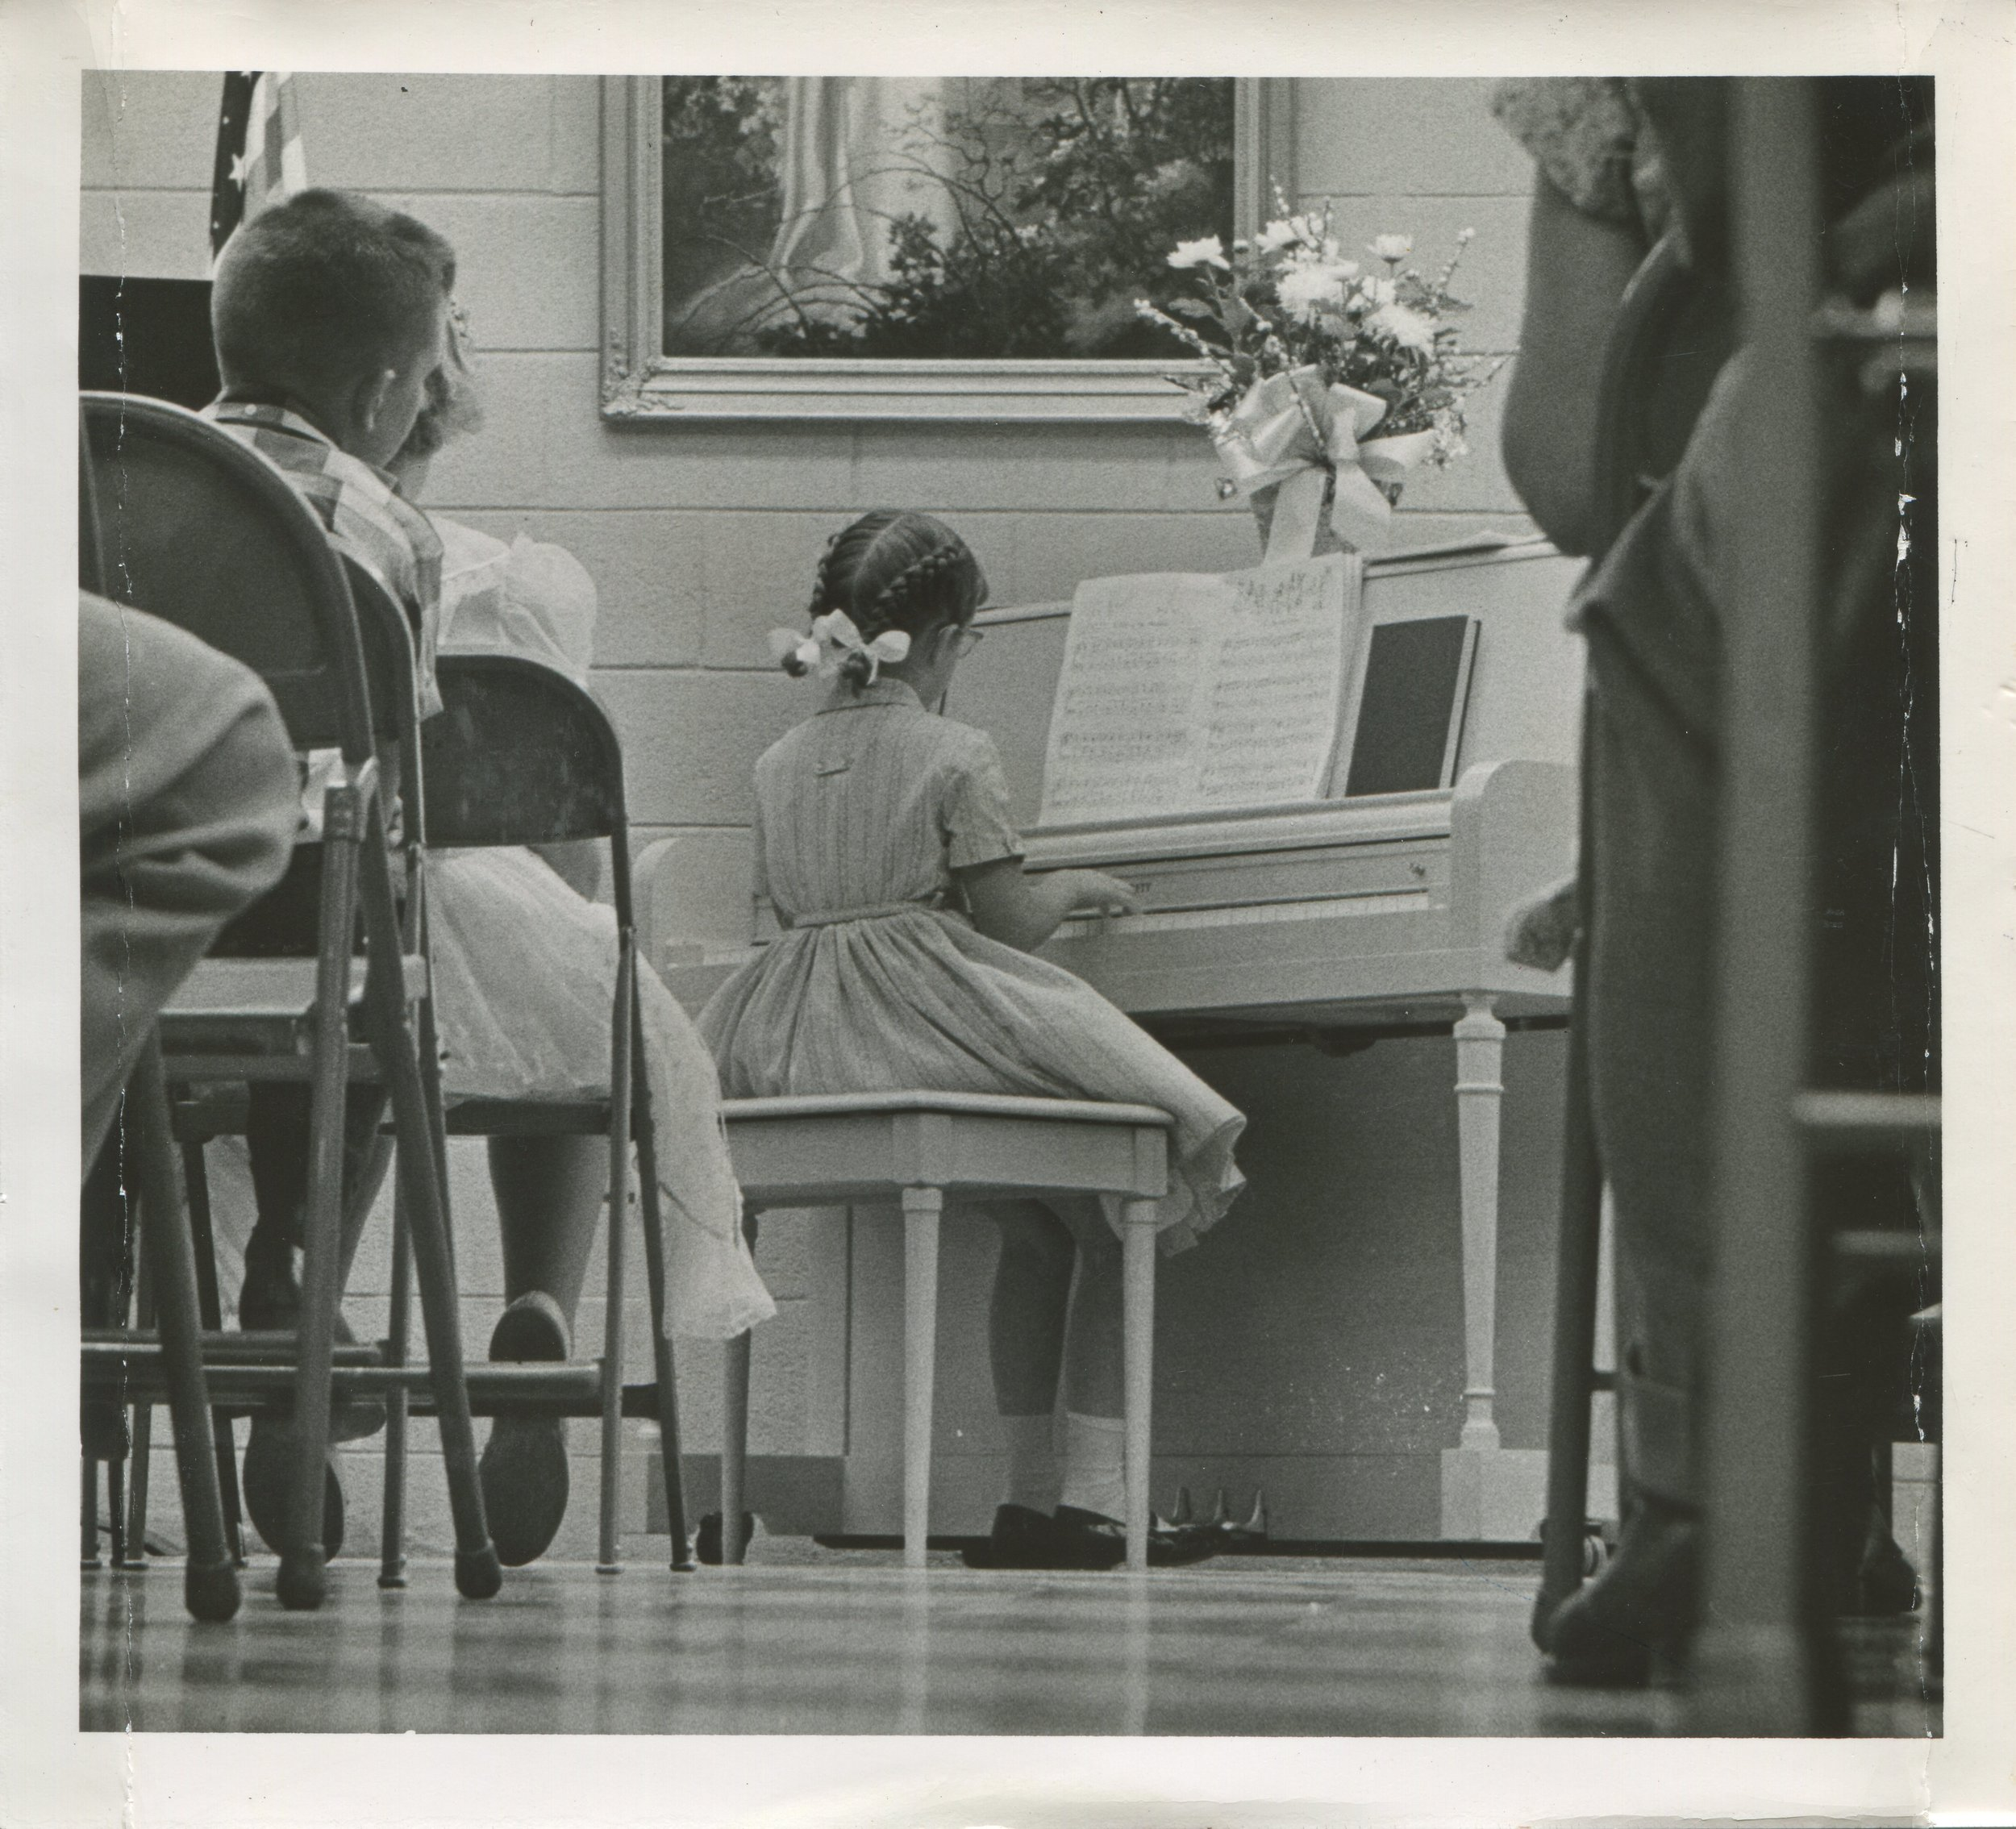 Mama playin' piano at church as a girl